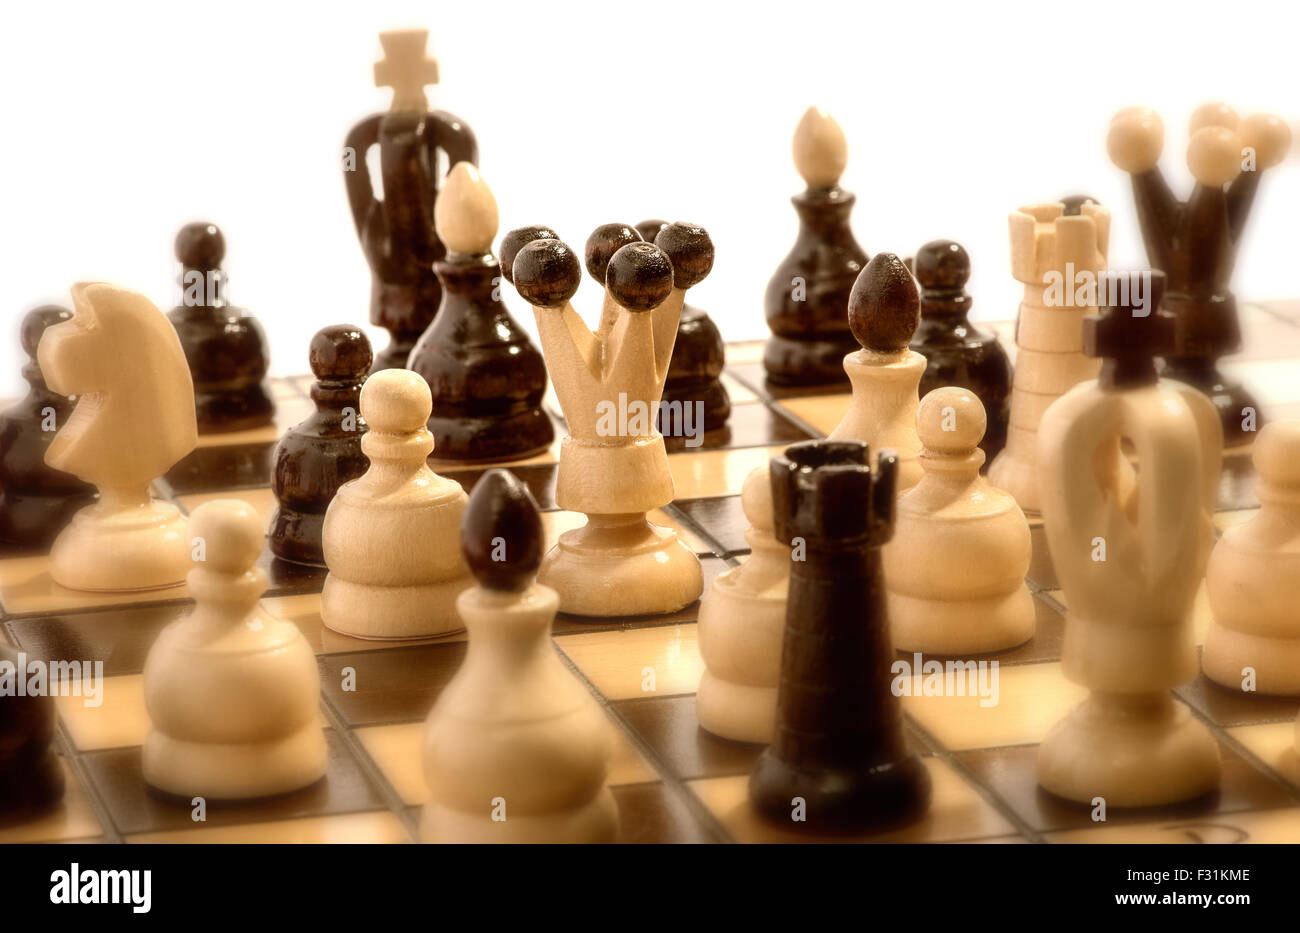 Chess match in progress - Stock Image